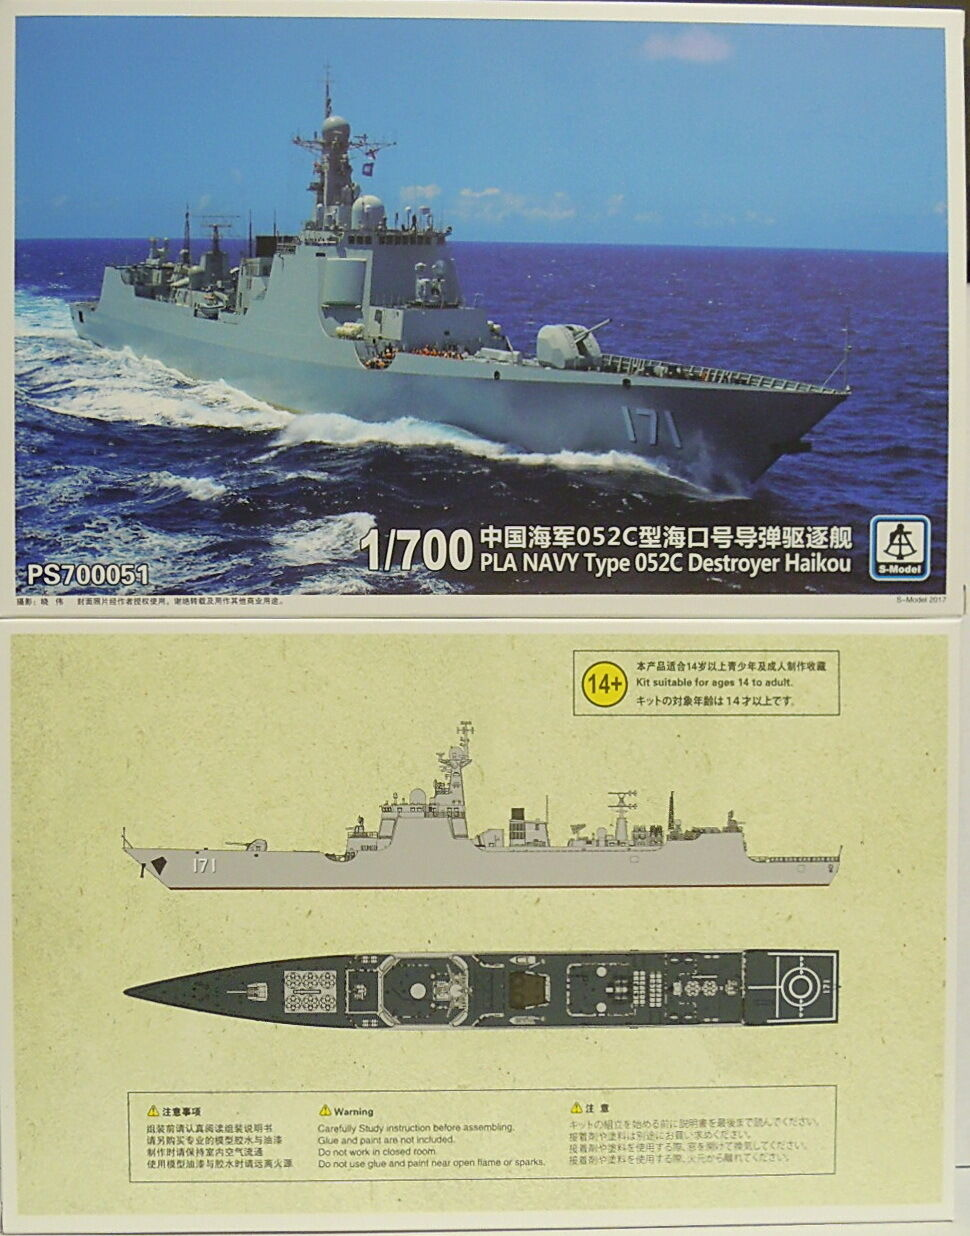 Destroyer Haikou Type 052C PLA Navy, S-MODEL, 1 700, Waterline, Etched Parts,